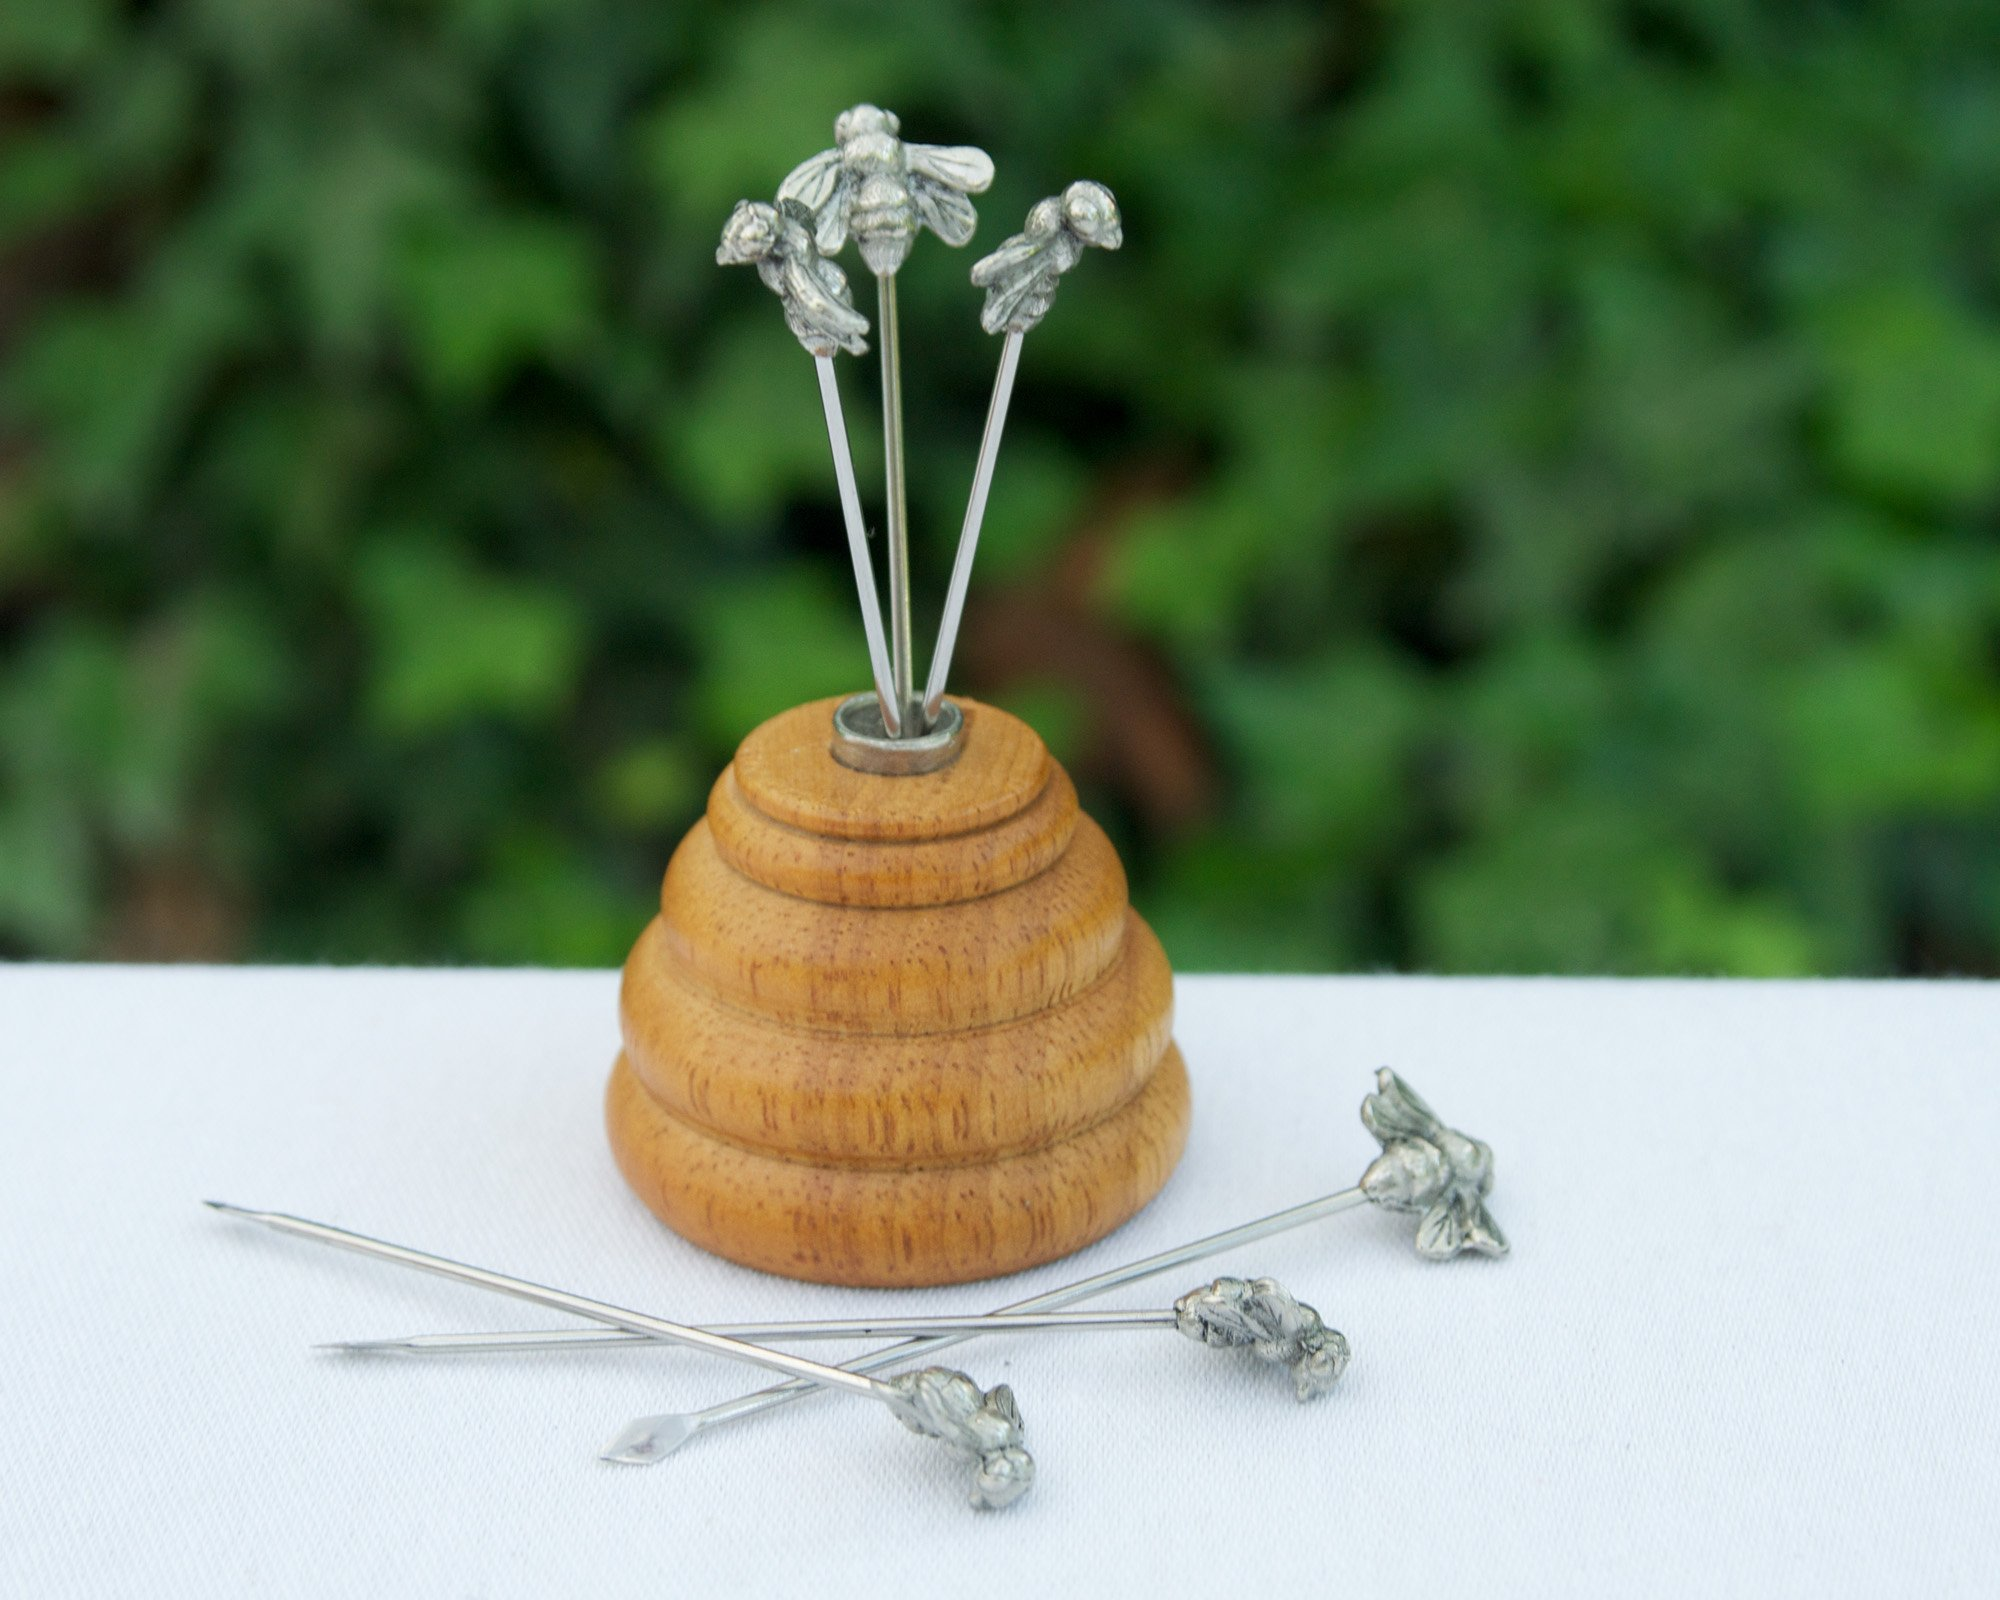 Vagabond House Hive of Bees Cheese Pick Set 3.5'' Tall (6 picks in set)